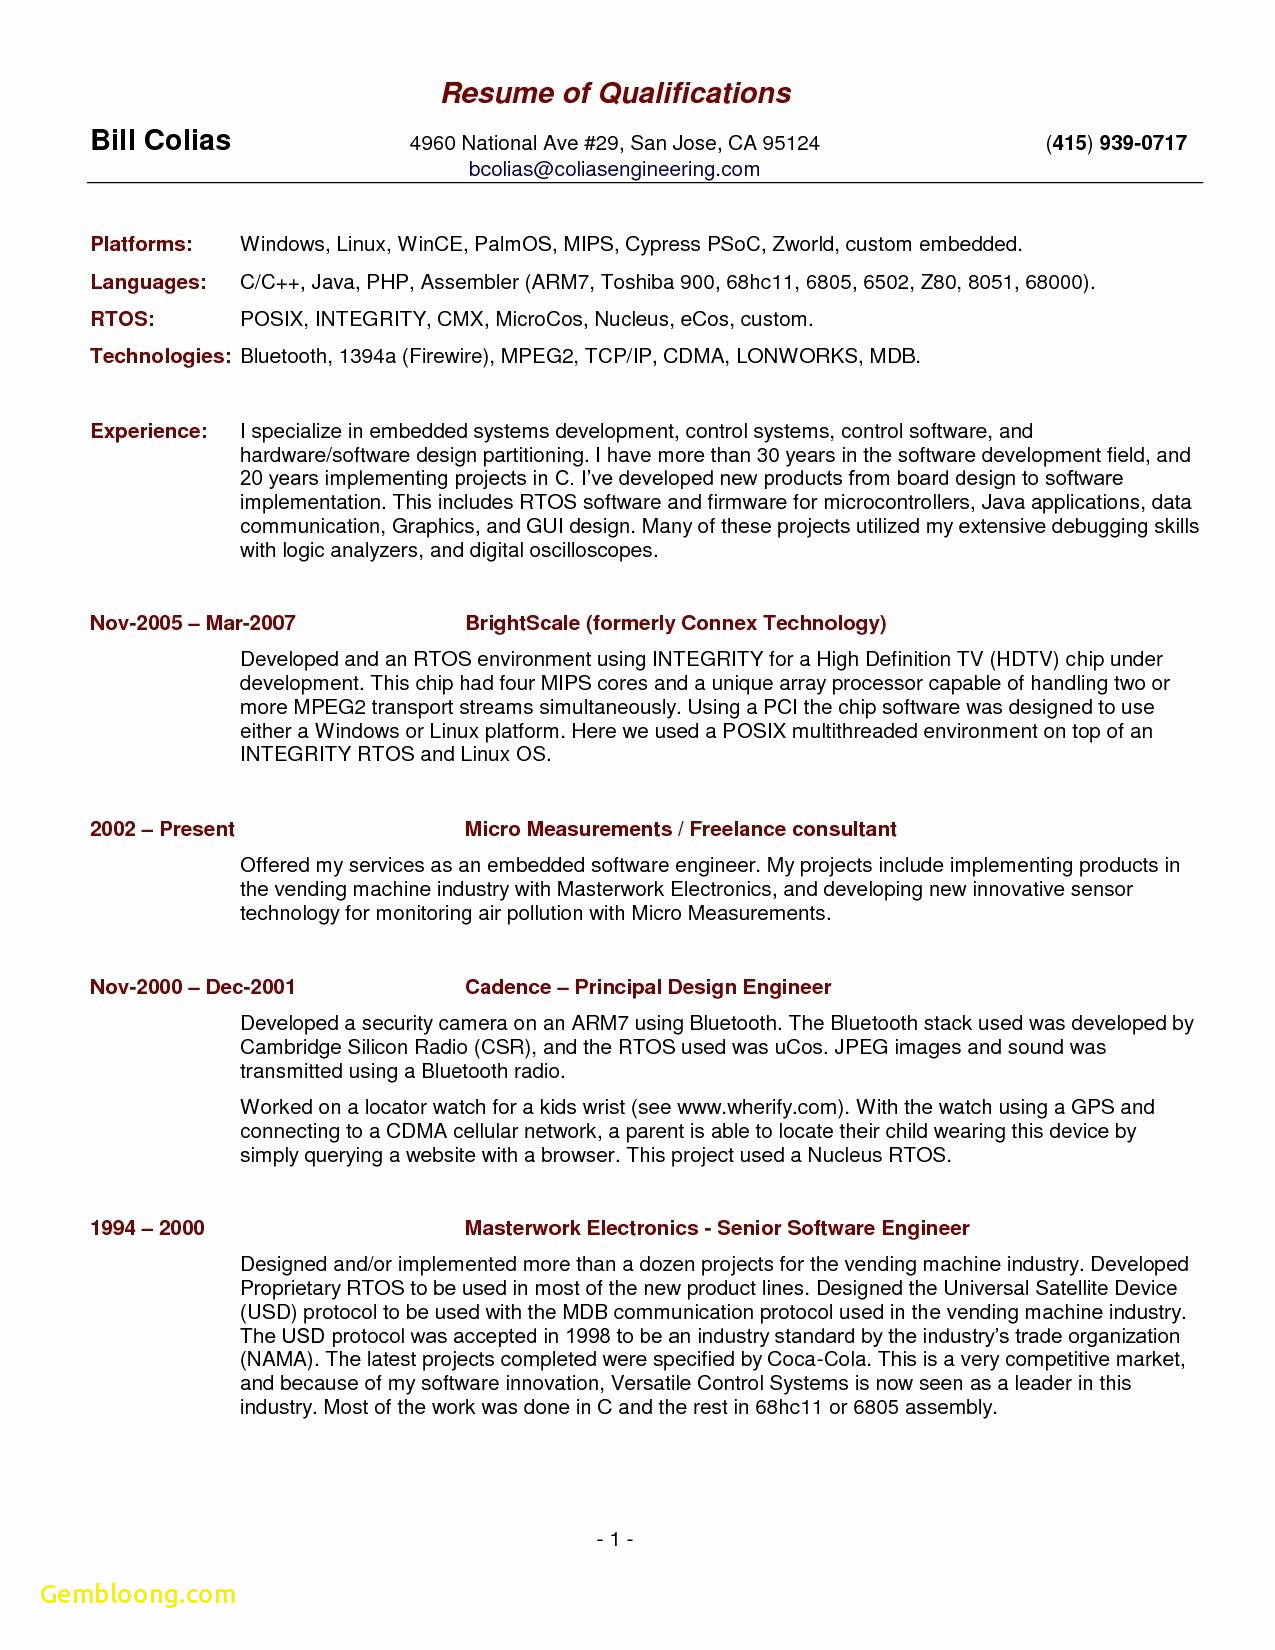 Online Resume Templates - Download Awesome Pr Resume